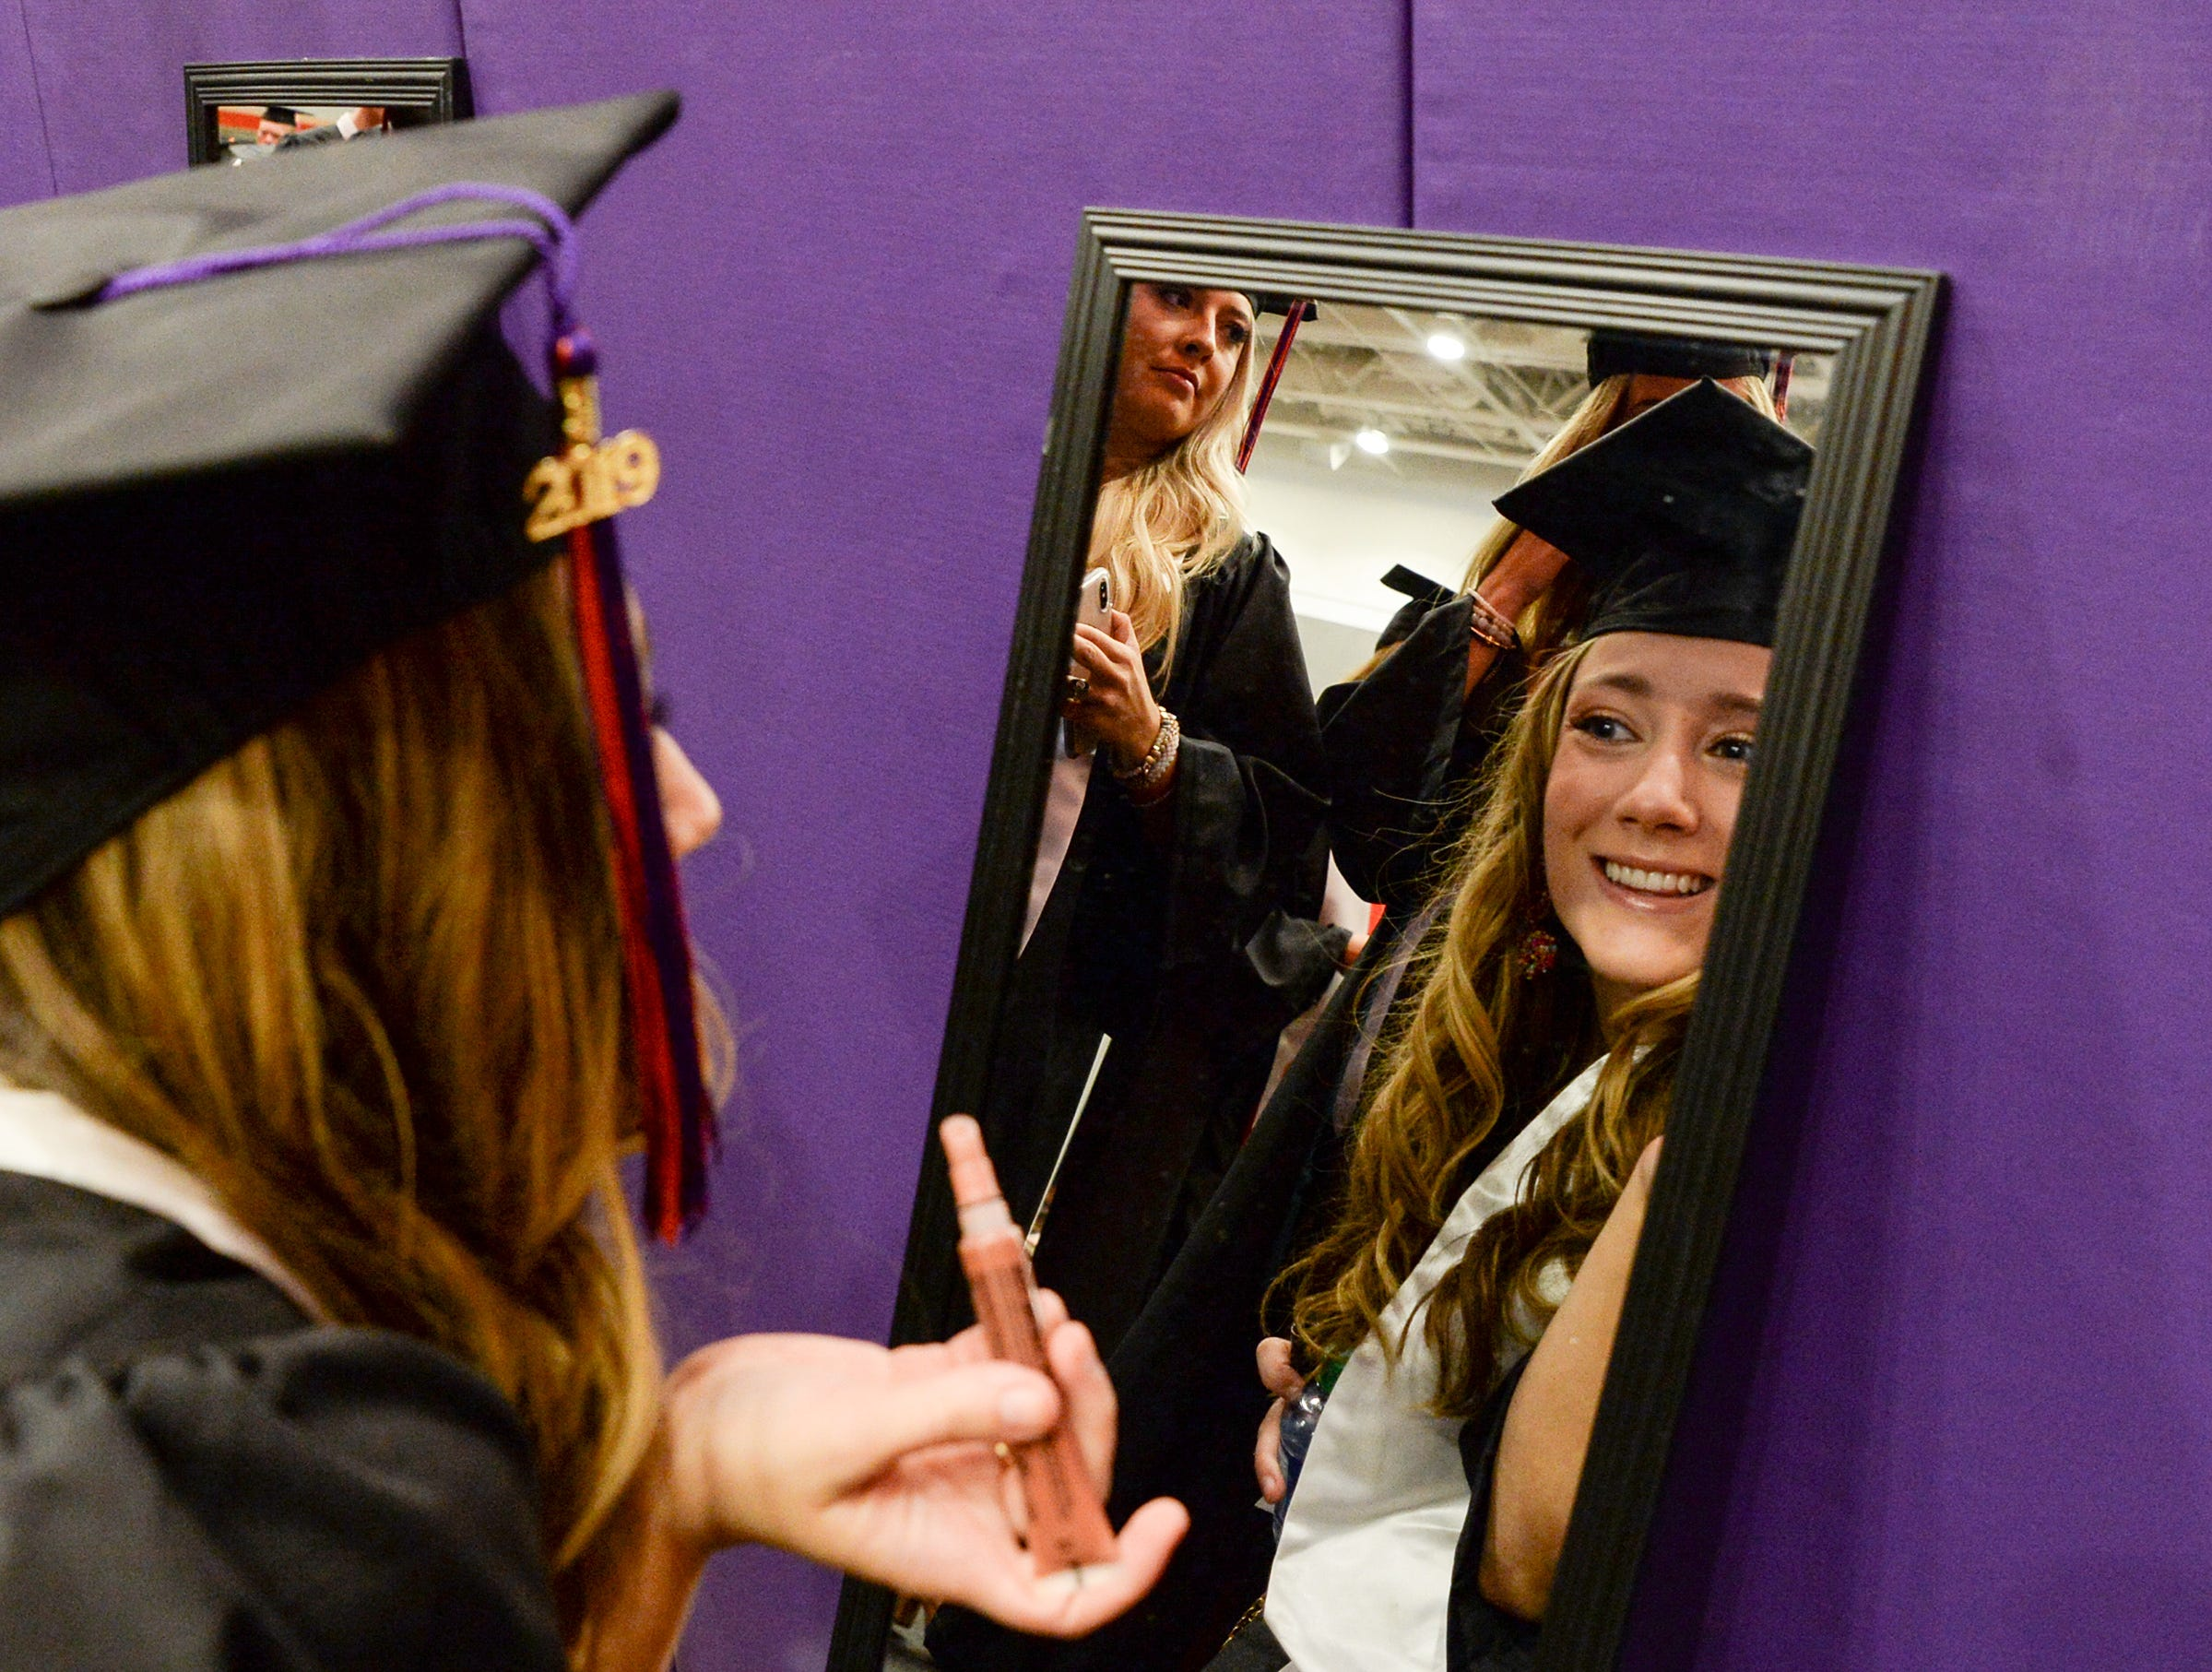 Carly Chapman of Greenville checks herself in a mirror before Clemson University commencement ceremonies in Littlejohn Coliseum in Clemson Friday, May 10, 2019.